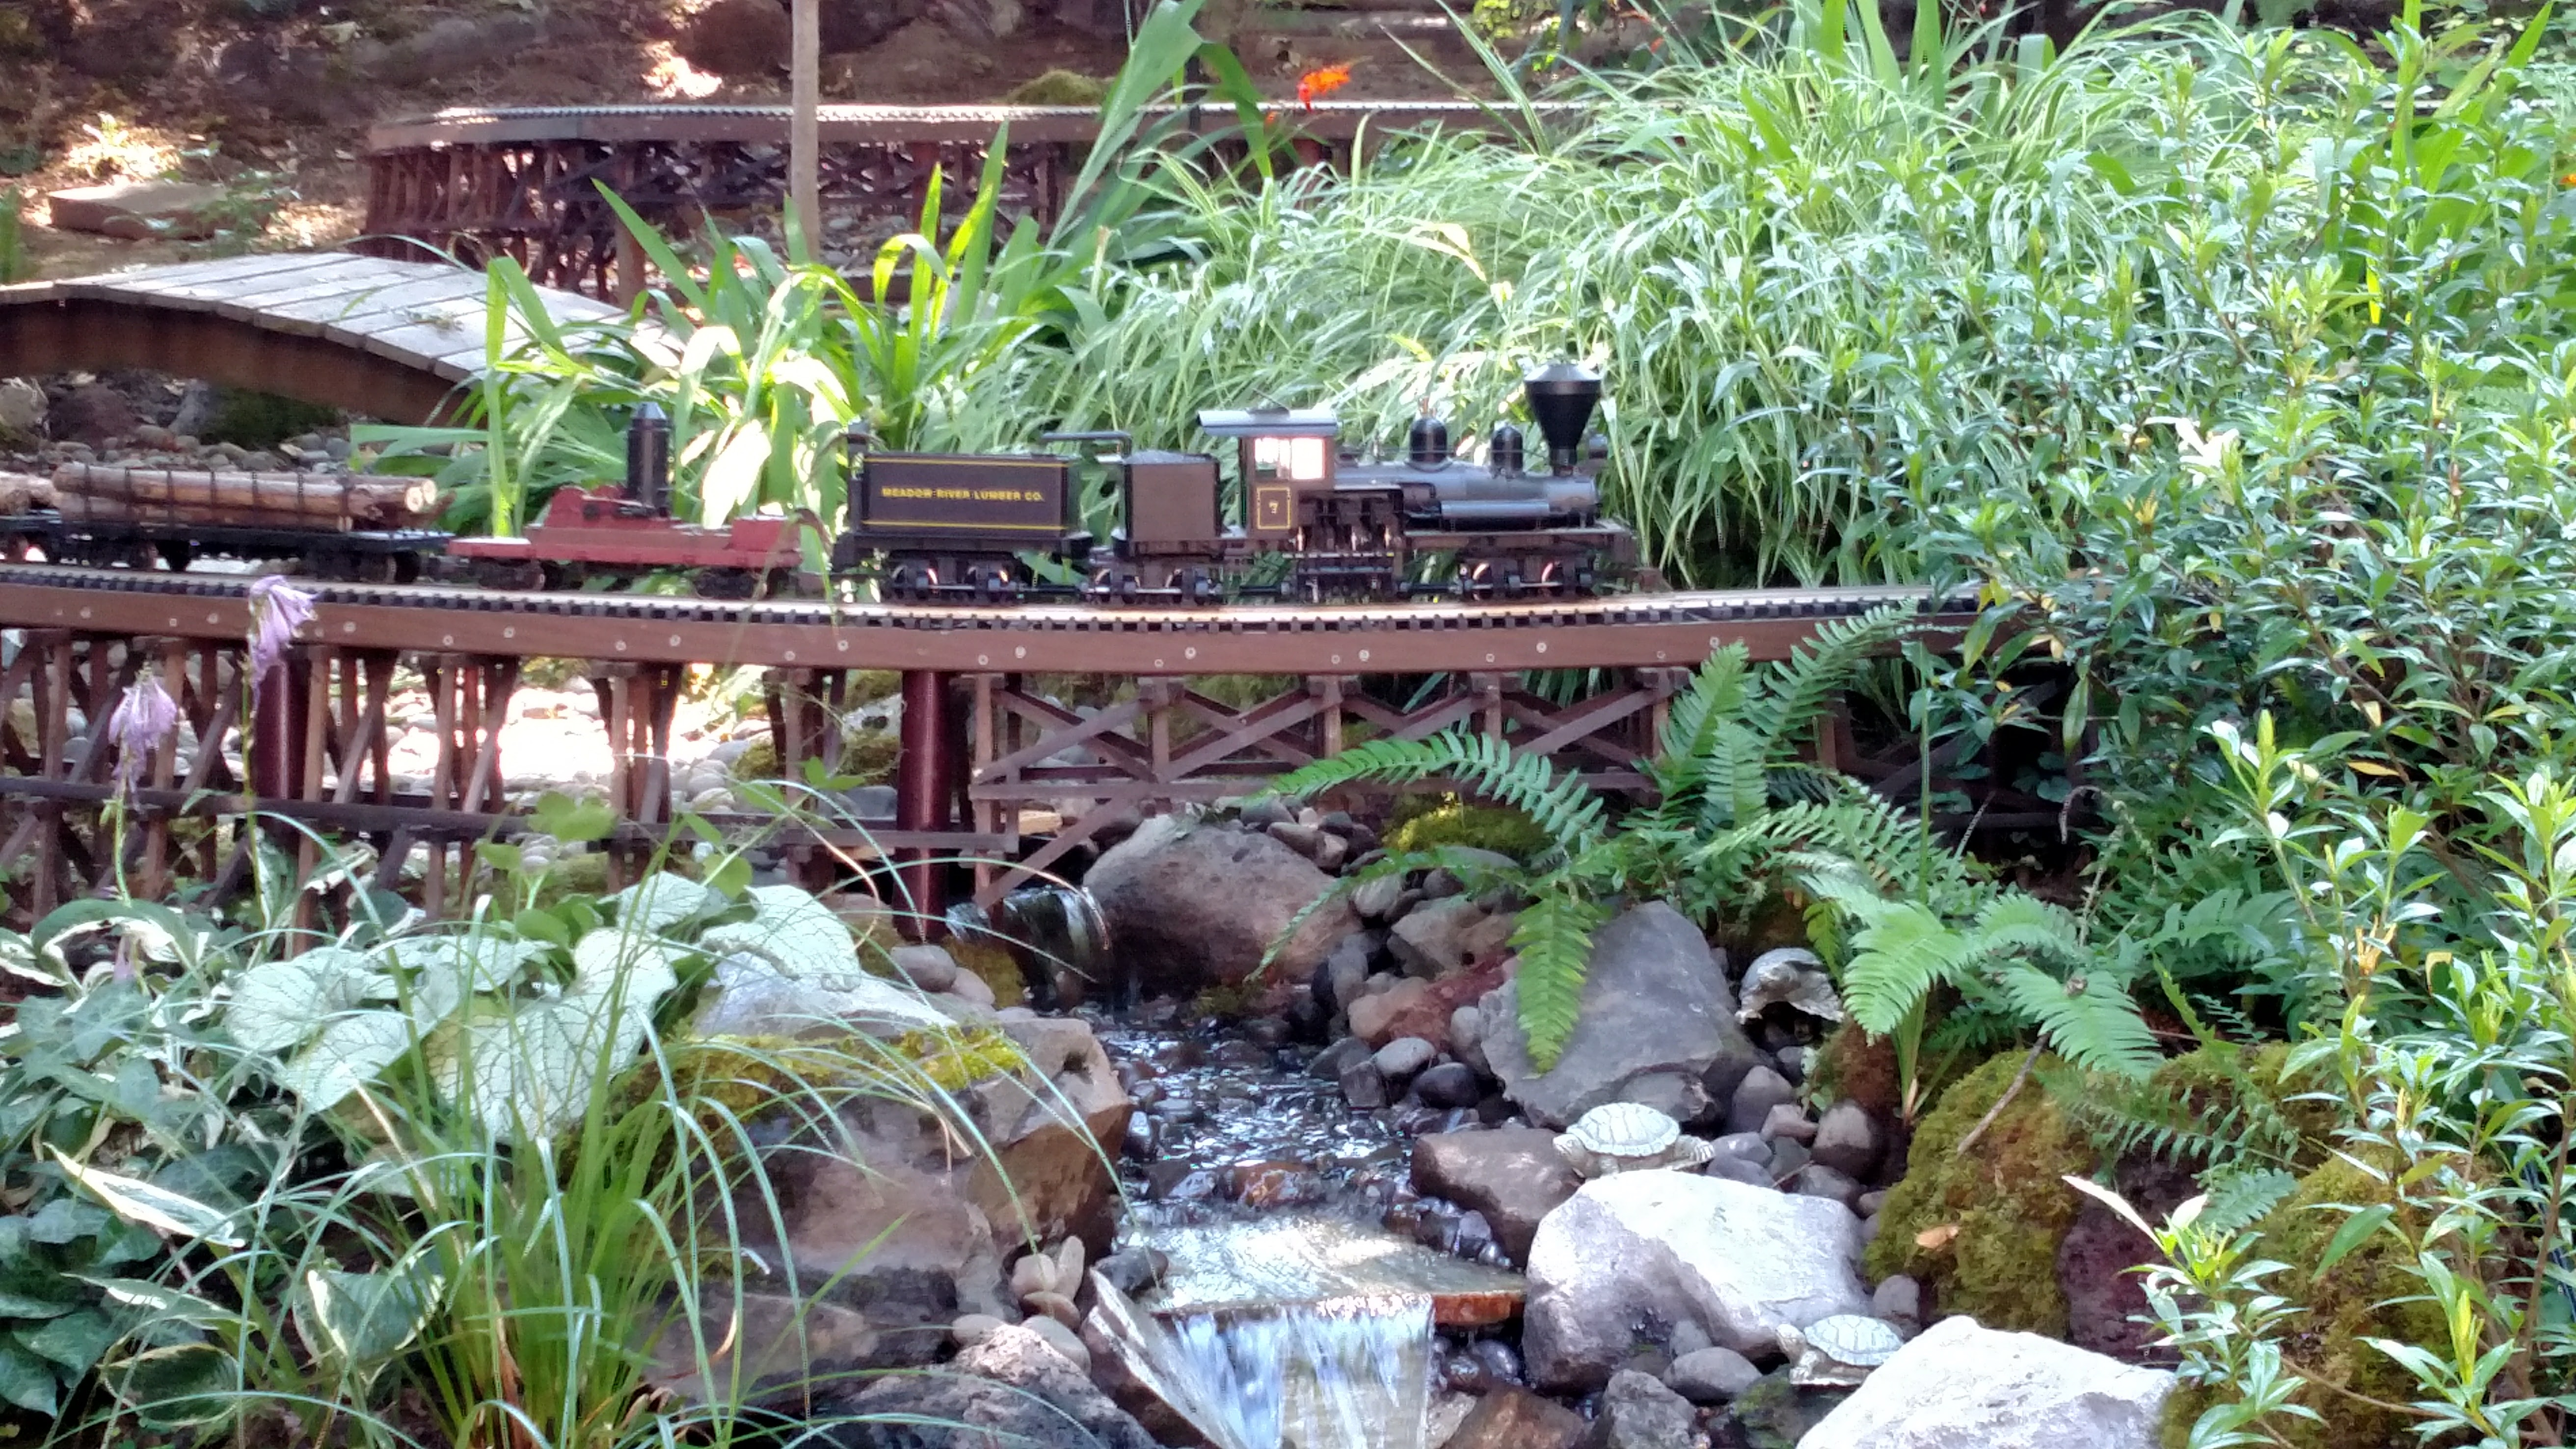 Lazenby Backyard Railroad